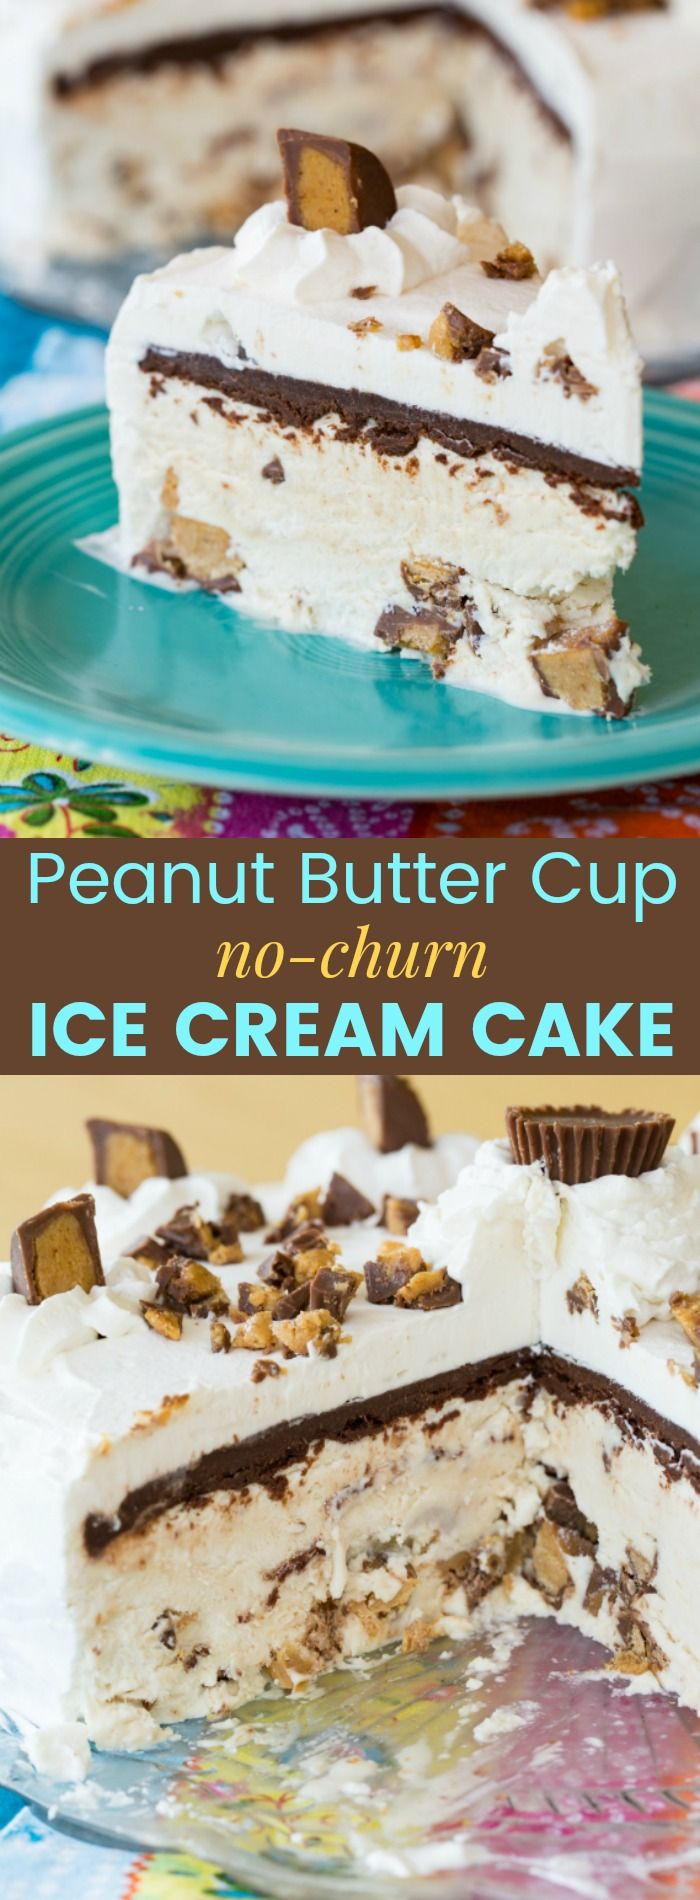 No-Churn Peanut Butter Cup Ice Cream Cake - this homemade frozen dessert recipe is made from a simple ice cream recipe loaded with Reese's topped with chocolate ganache, and covered in fresh whipped cream. With only 7 ingredients and no ice cream maker needed, it's super easy and will be the best birthday cake ever!